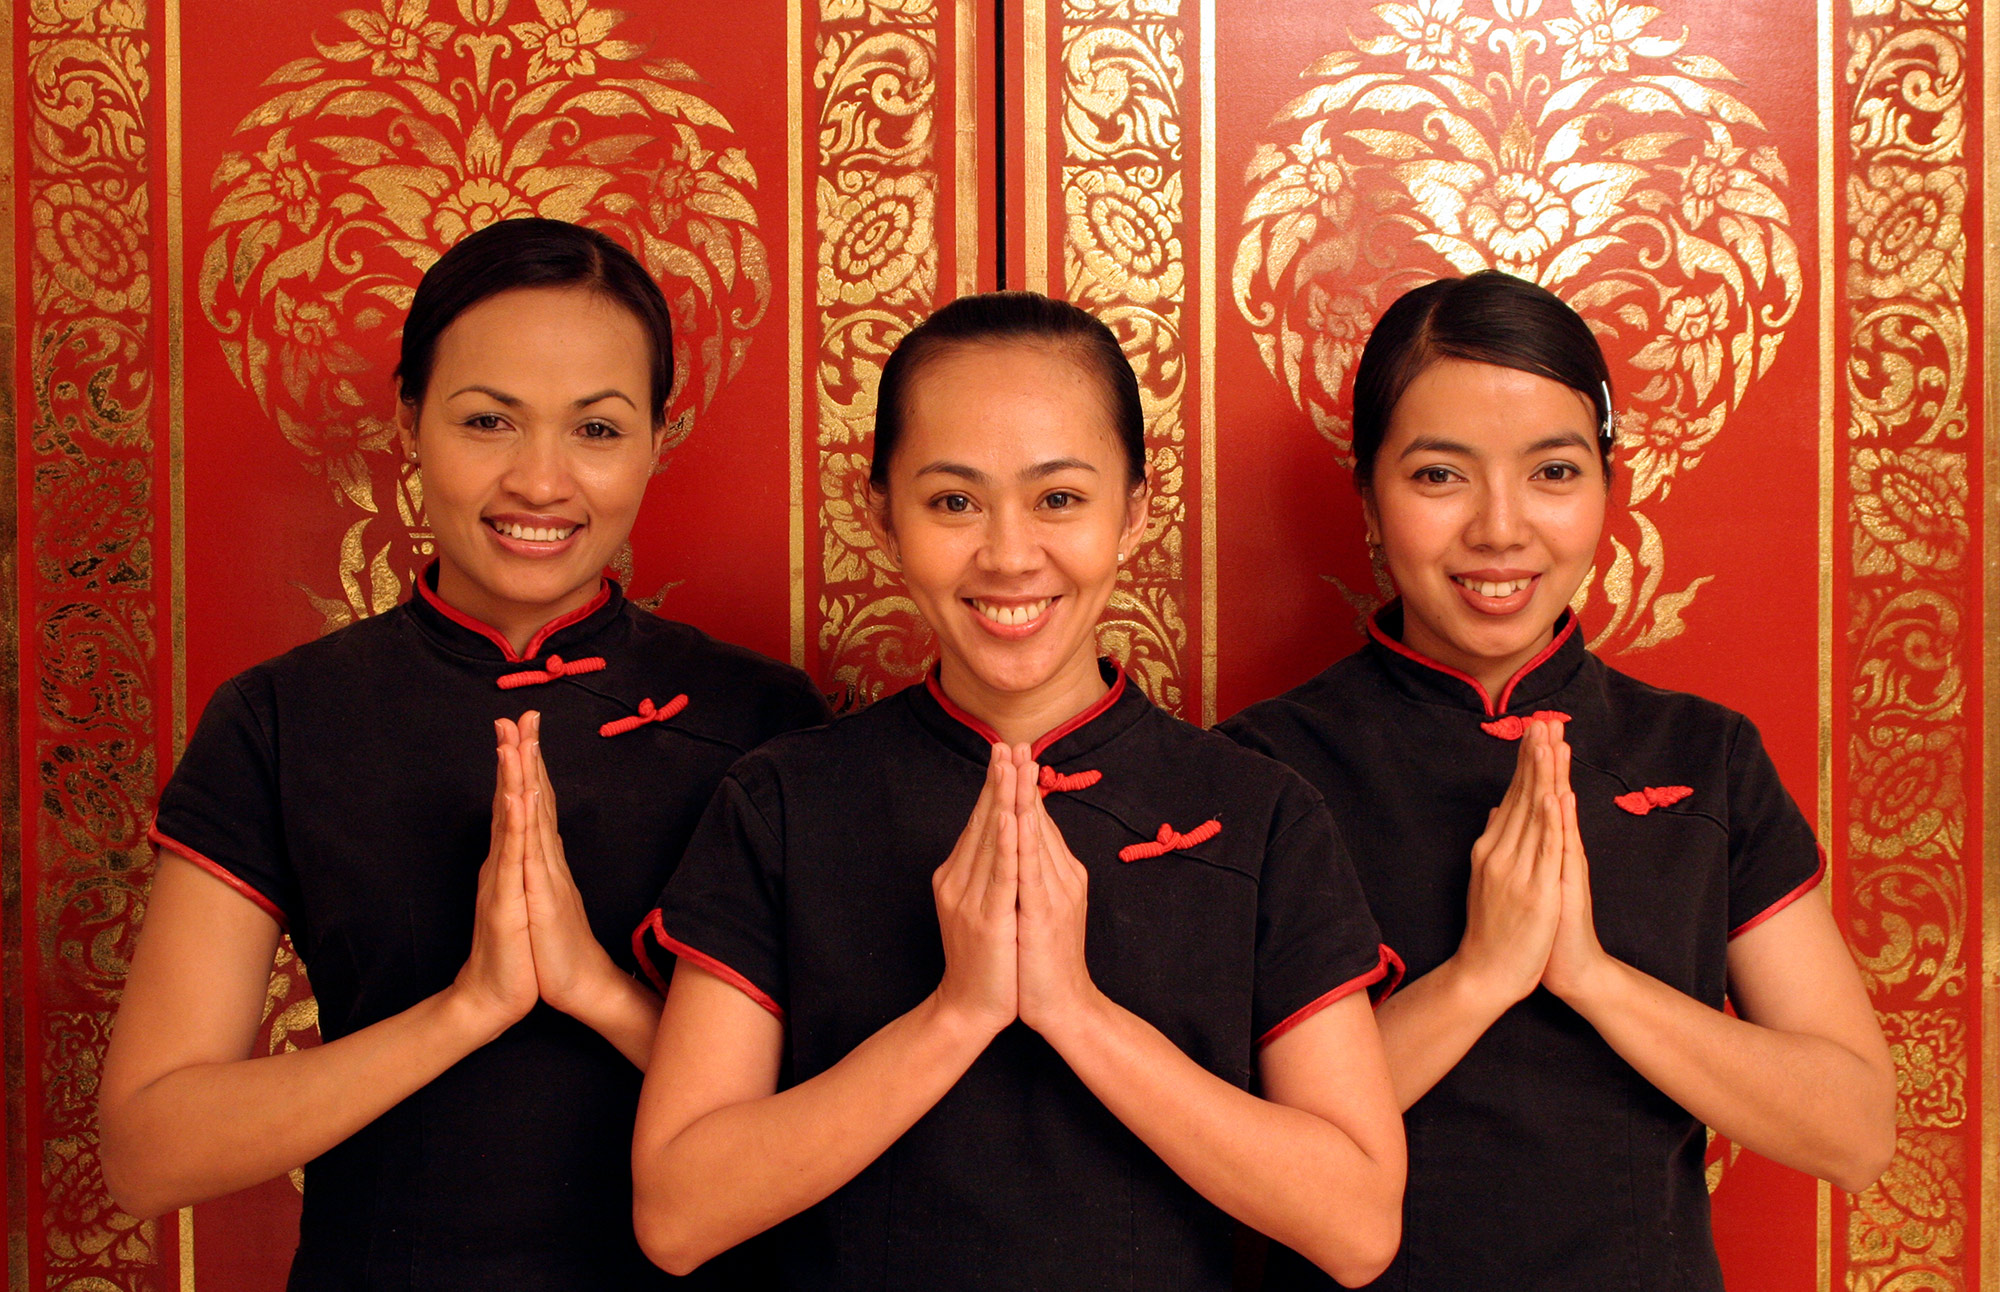 Three Thai therapists with their hands in meditation position, standing in front of an ornate door